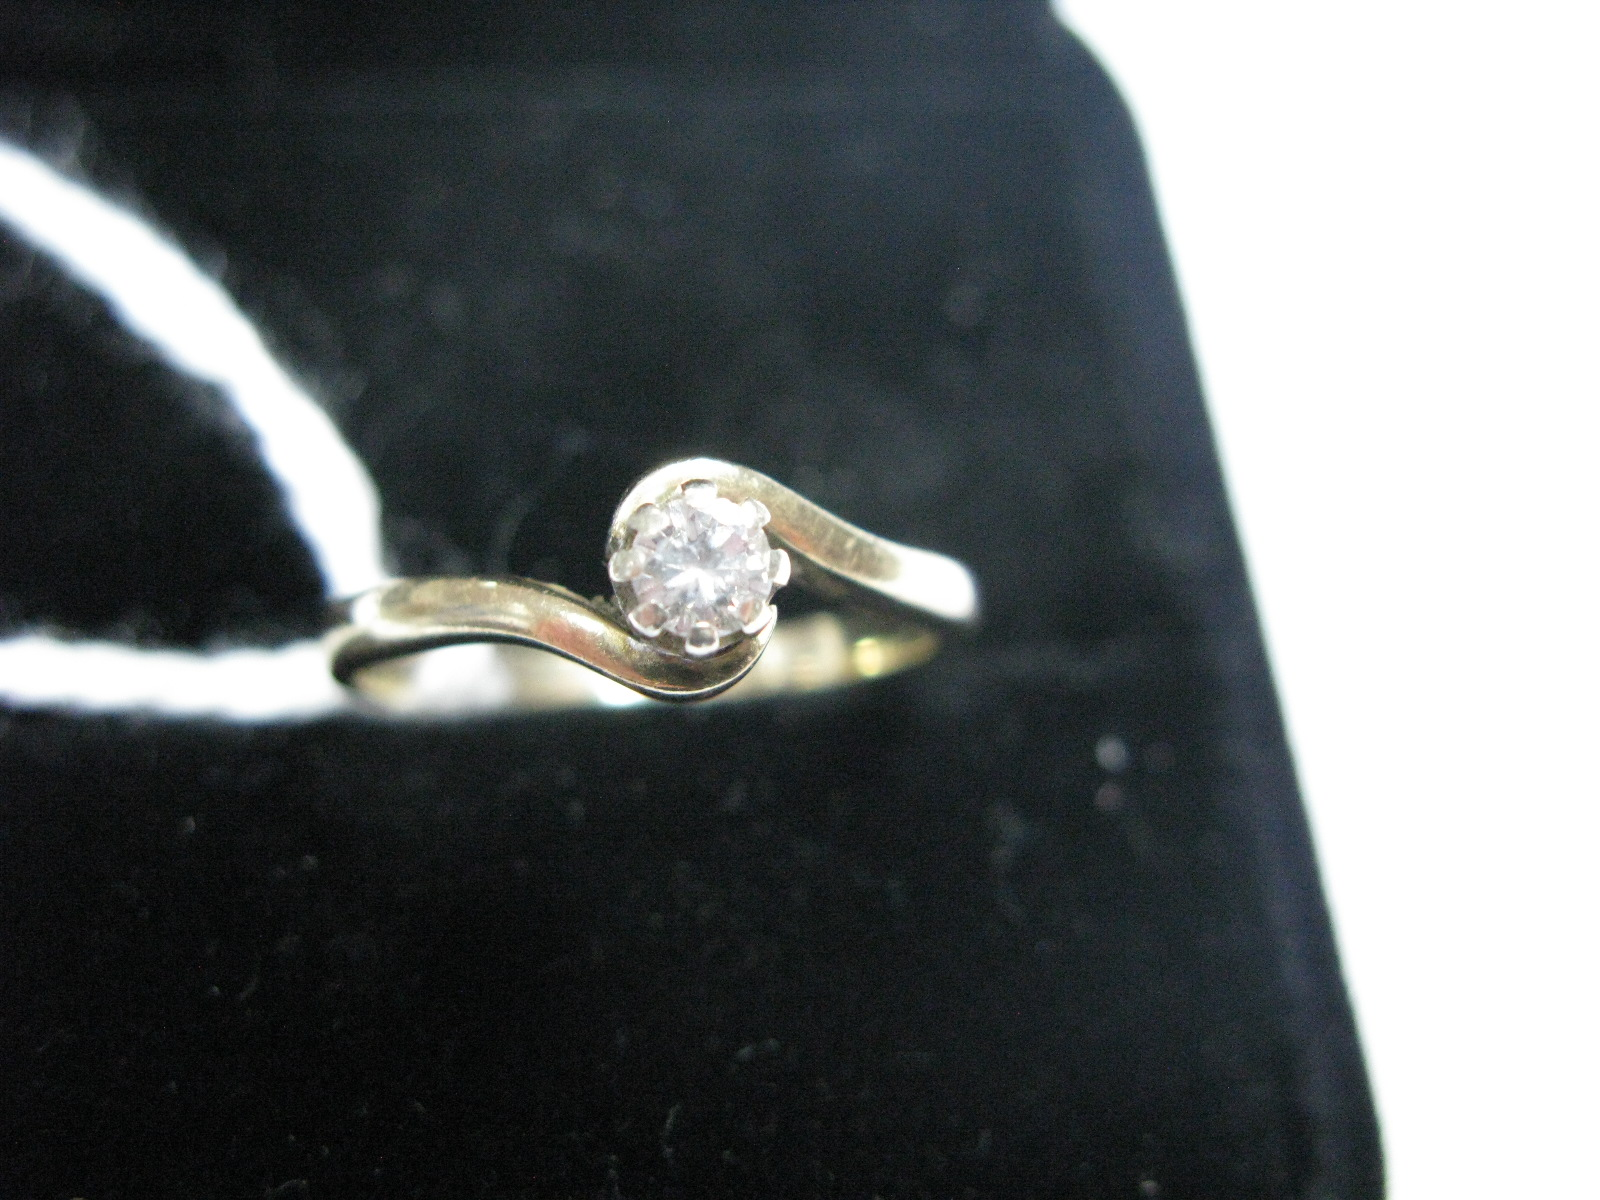 Lot 1351 - A Modern 9ct Gold Single Stone Diamond Ring, the brilliant cut stone claw set between crossover